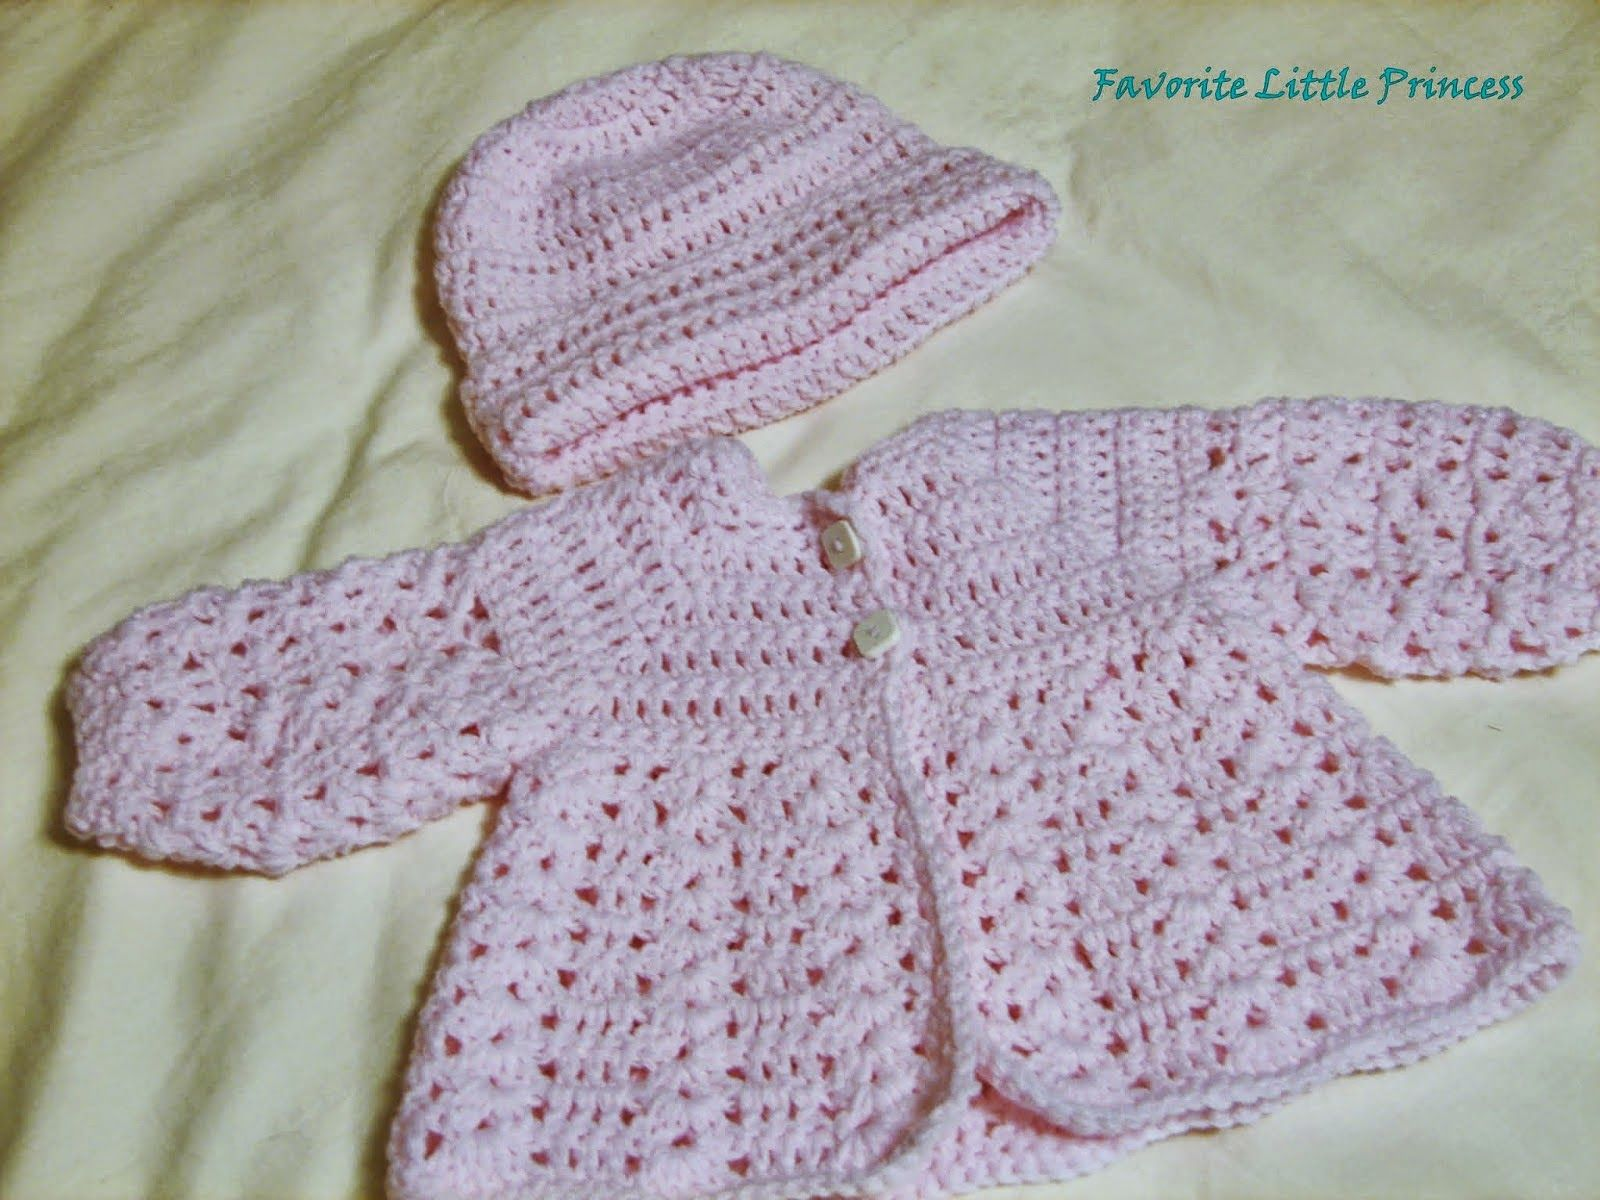 FREE PATTERN FRIDAY! on my blog: http://favoritelittleprincess ...